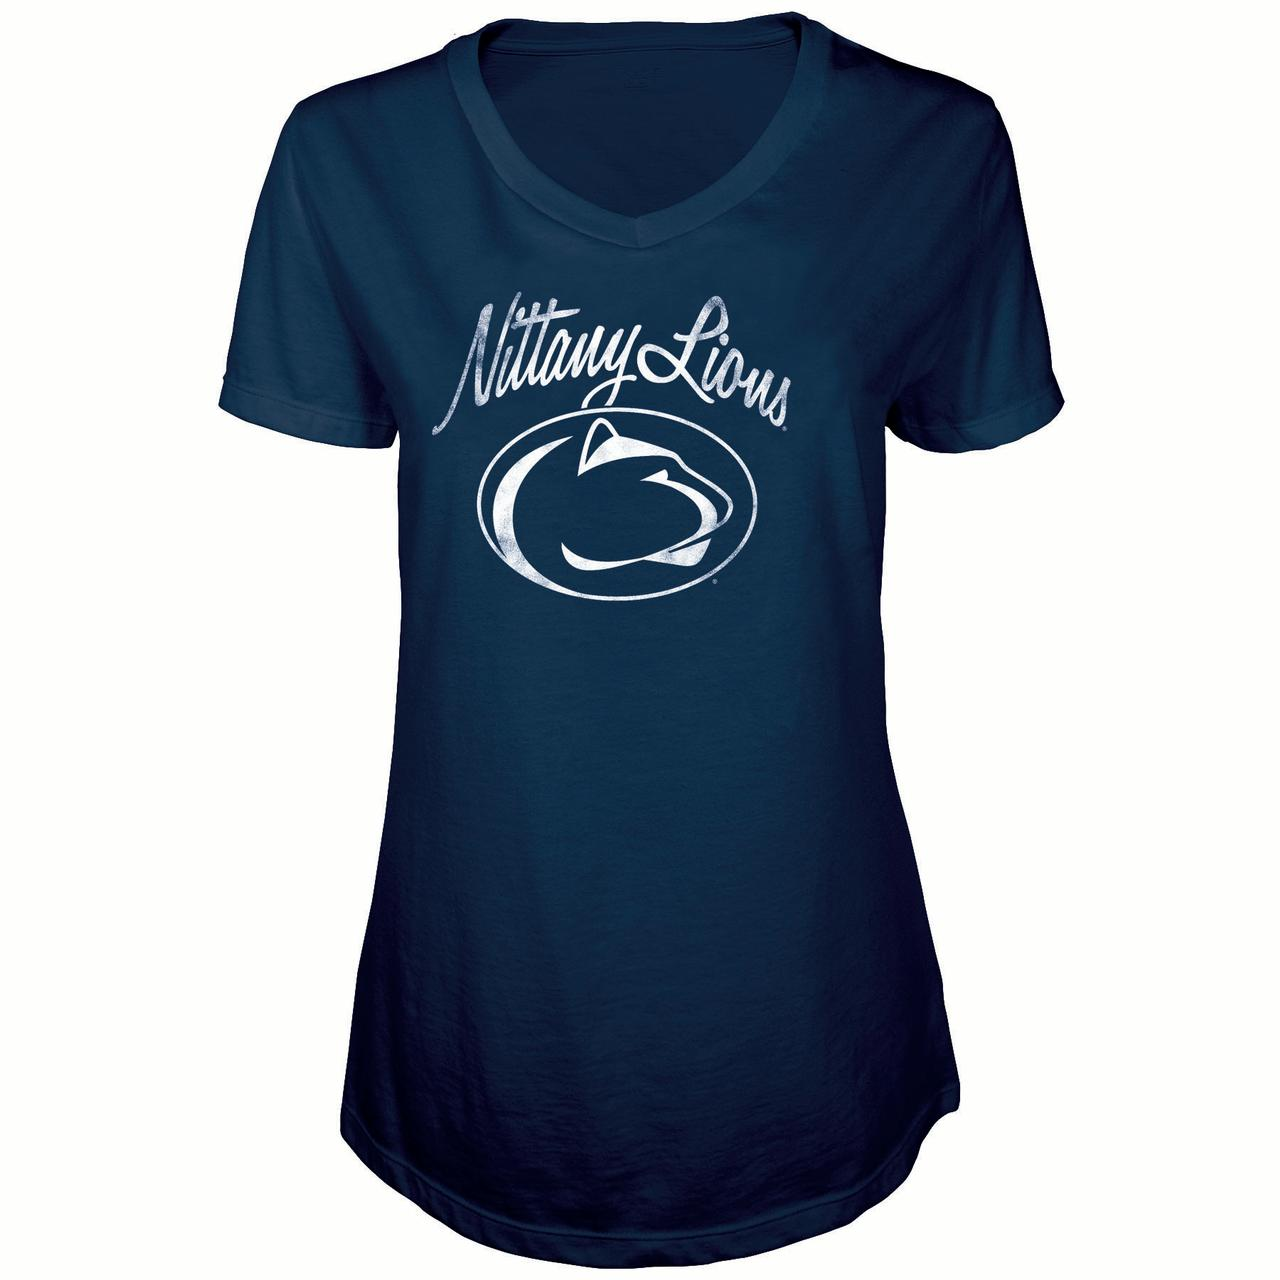 Women's Russell Navy Penn State Nittany Lions Distressed V-Neck Tunic T-Shirt